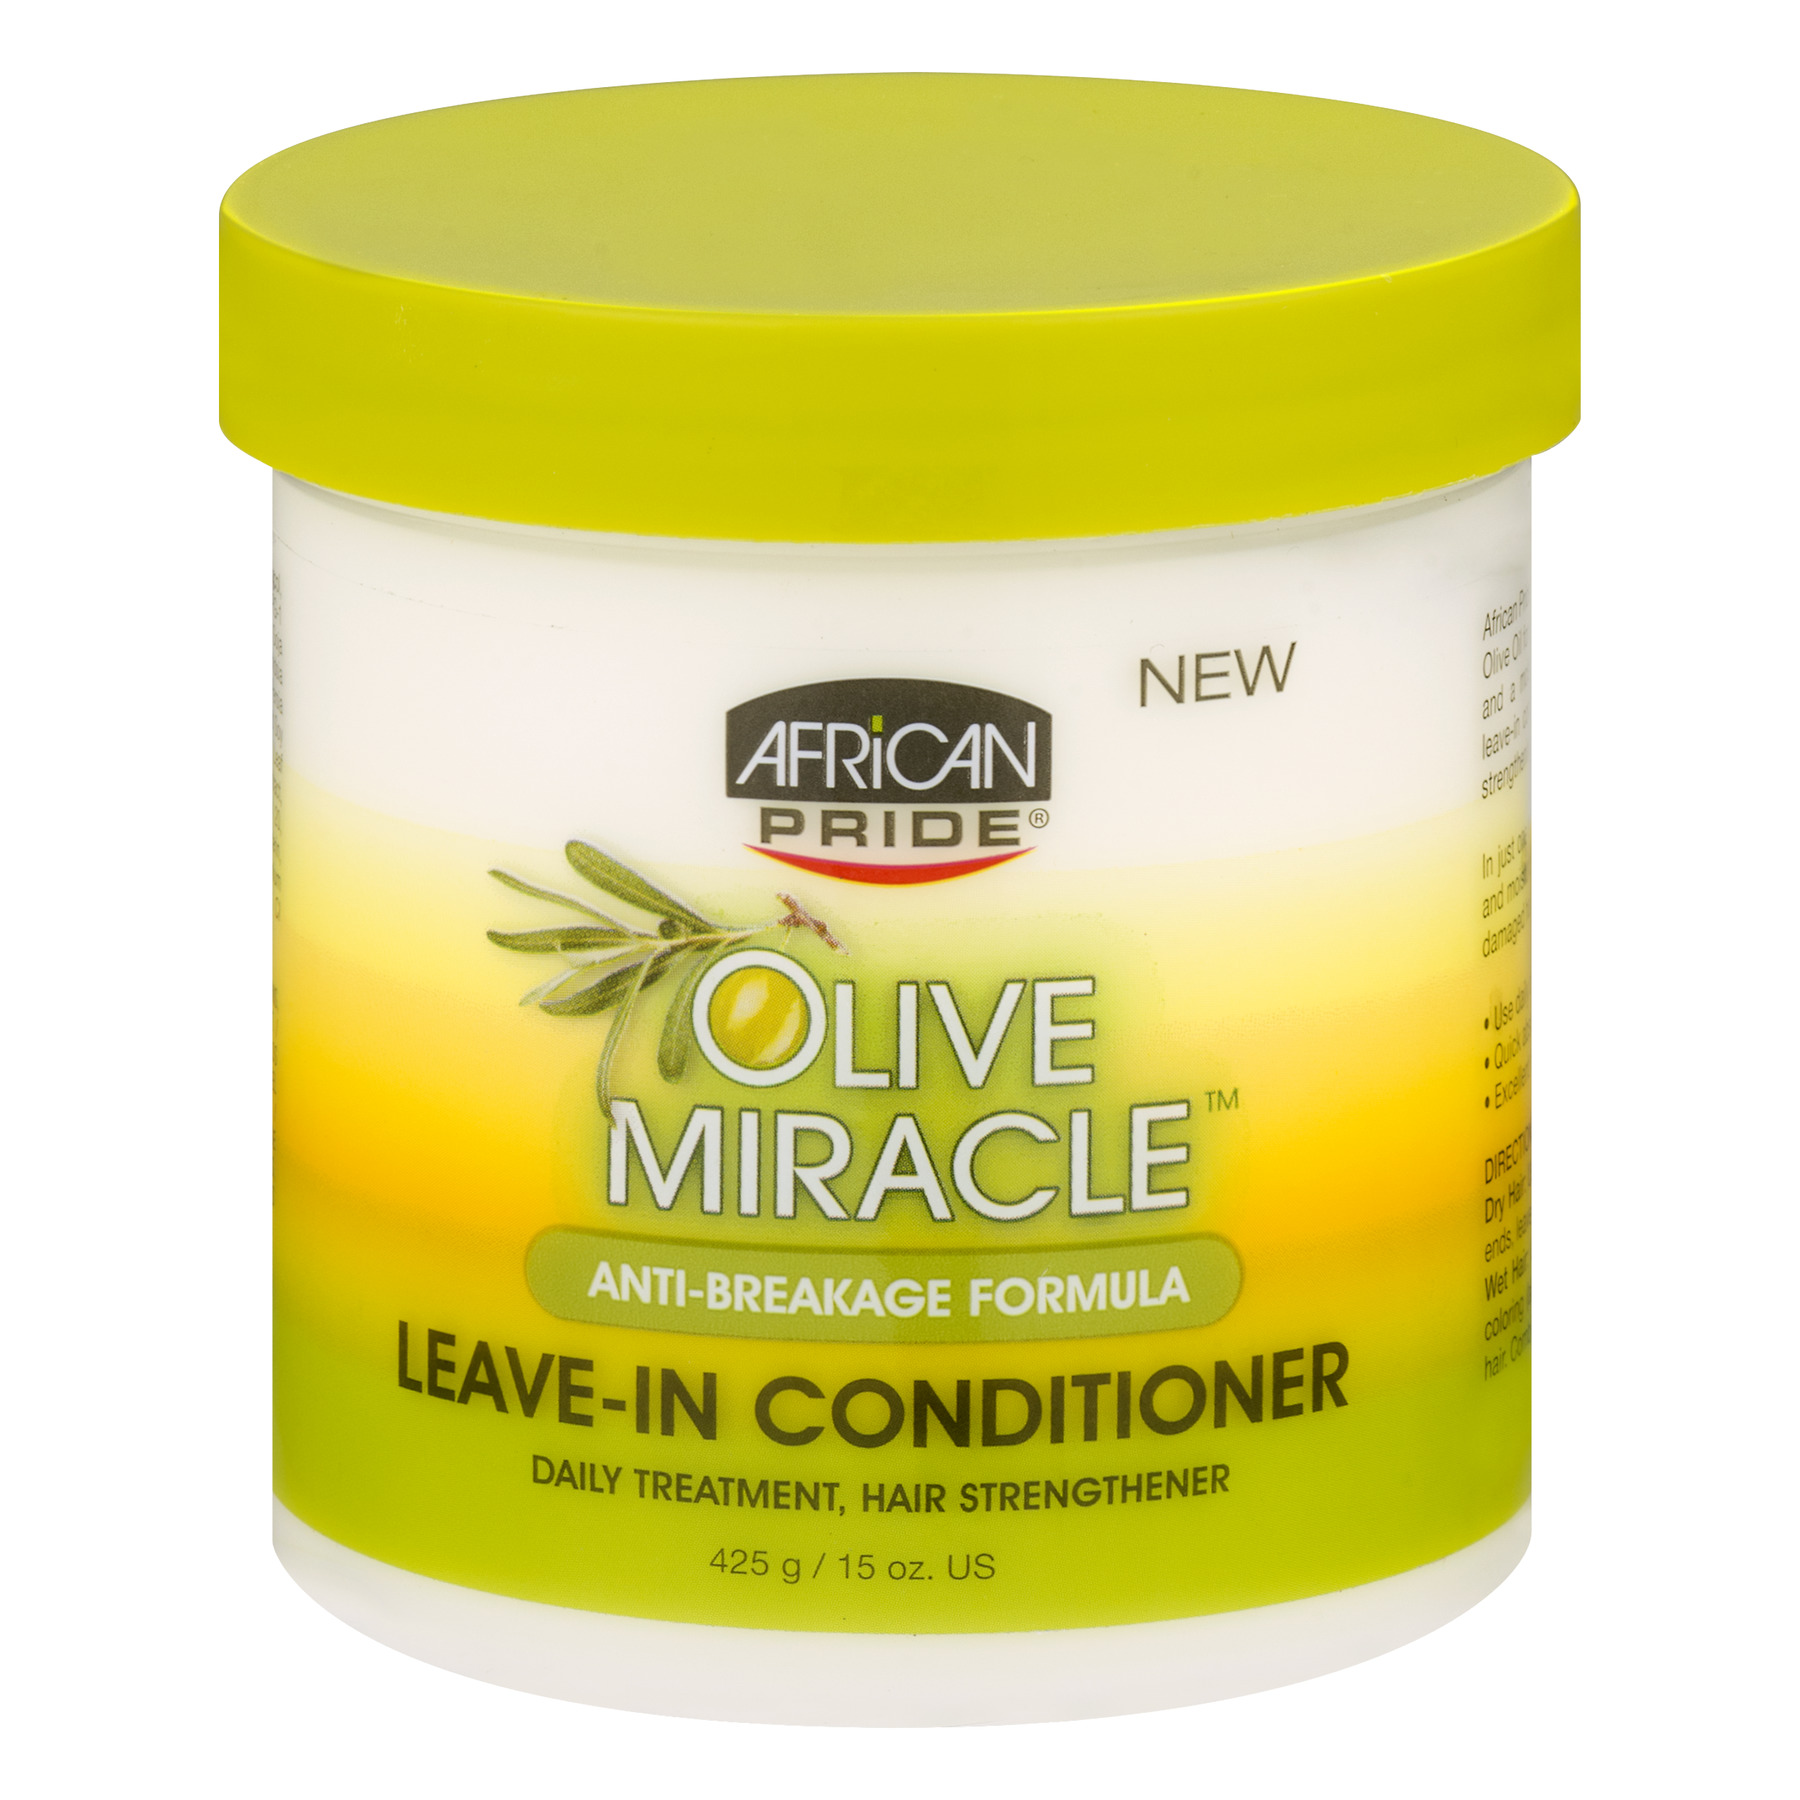 African Pride Olive Miracle Anti-Breakage Formula Leave-In Conditioner 15  oz  Jar